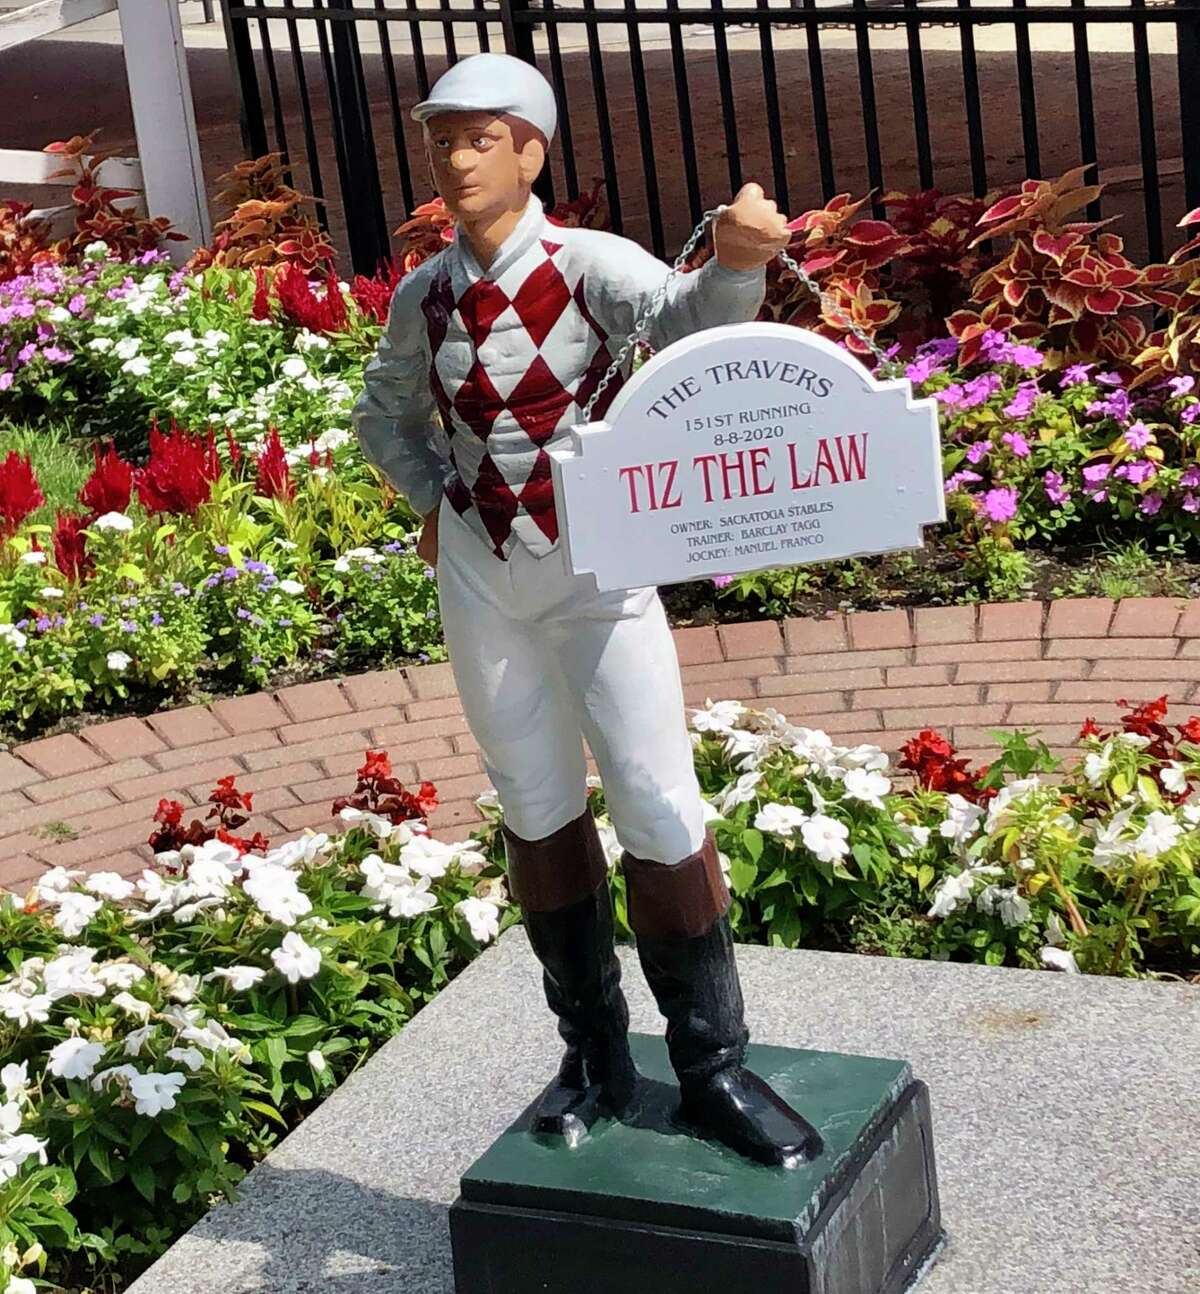 Therea€™s a new jockey ... statue ... in town. It didna€™t take long for the New York Racing Association to honor Travers winner Tiz the Law with his personalized jockey statue in the garden just inside the clubhouse gate. Adorned in the maroon and gray colors of Sackatoga Stable, which owns the New York-bred, the jockey takes over for last yeara€™s Travers winner, Code of Honor, whose jockey statue was adorned in green and yellow. As of Sunday afternoon, the traditional Travers canoe has yet to make its apperance in the infield lake with the new colors, the Sackatoga colors, on it. Soon. a€?